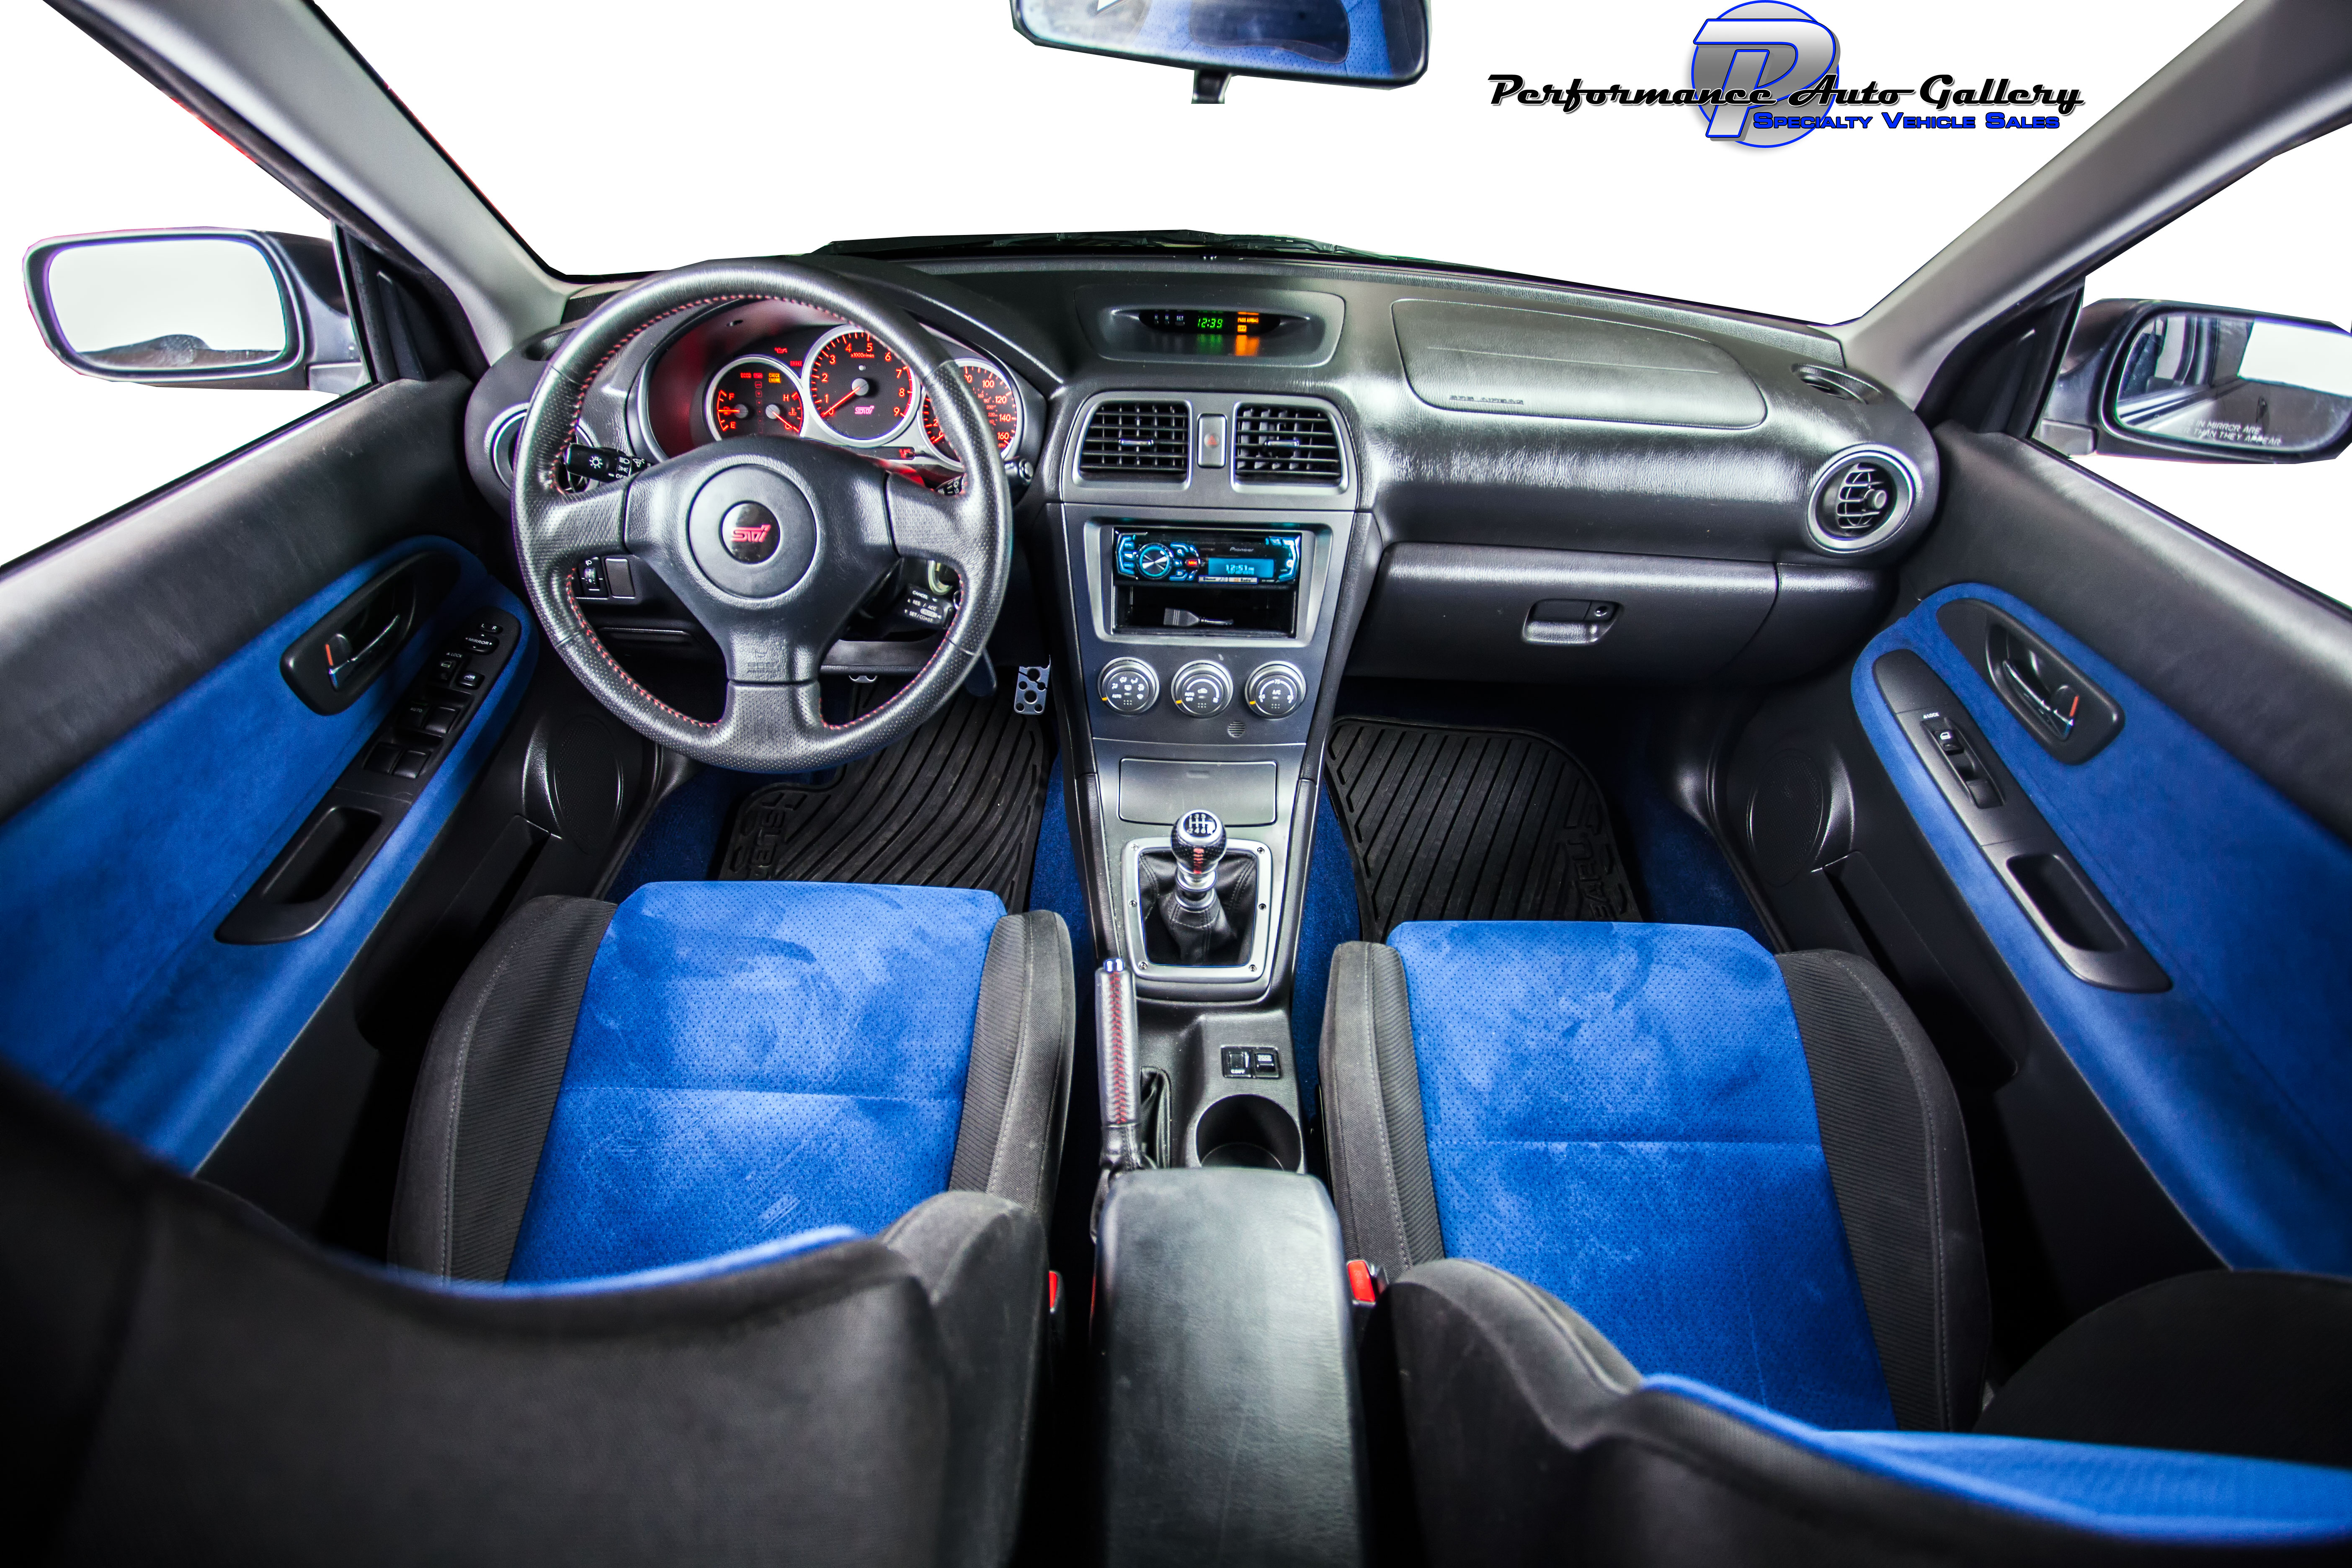 Get Ready For Takeoff With This 2006 Sti